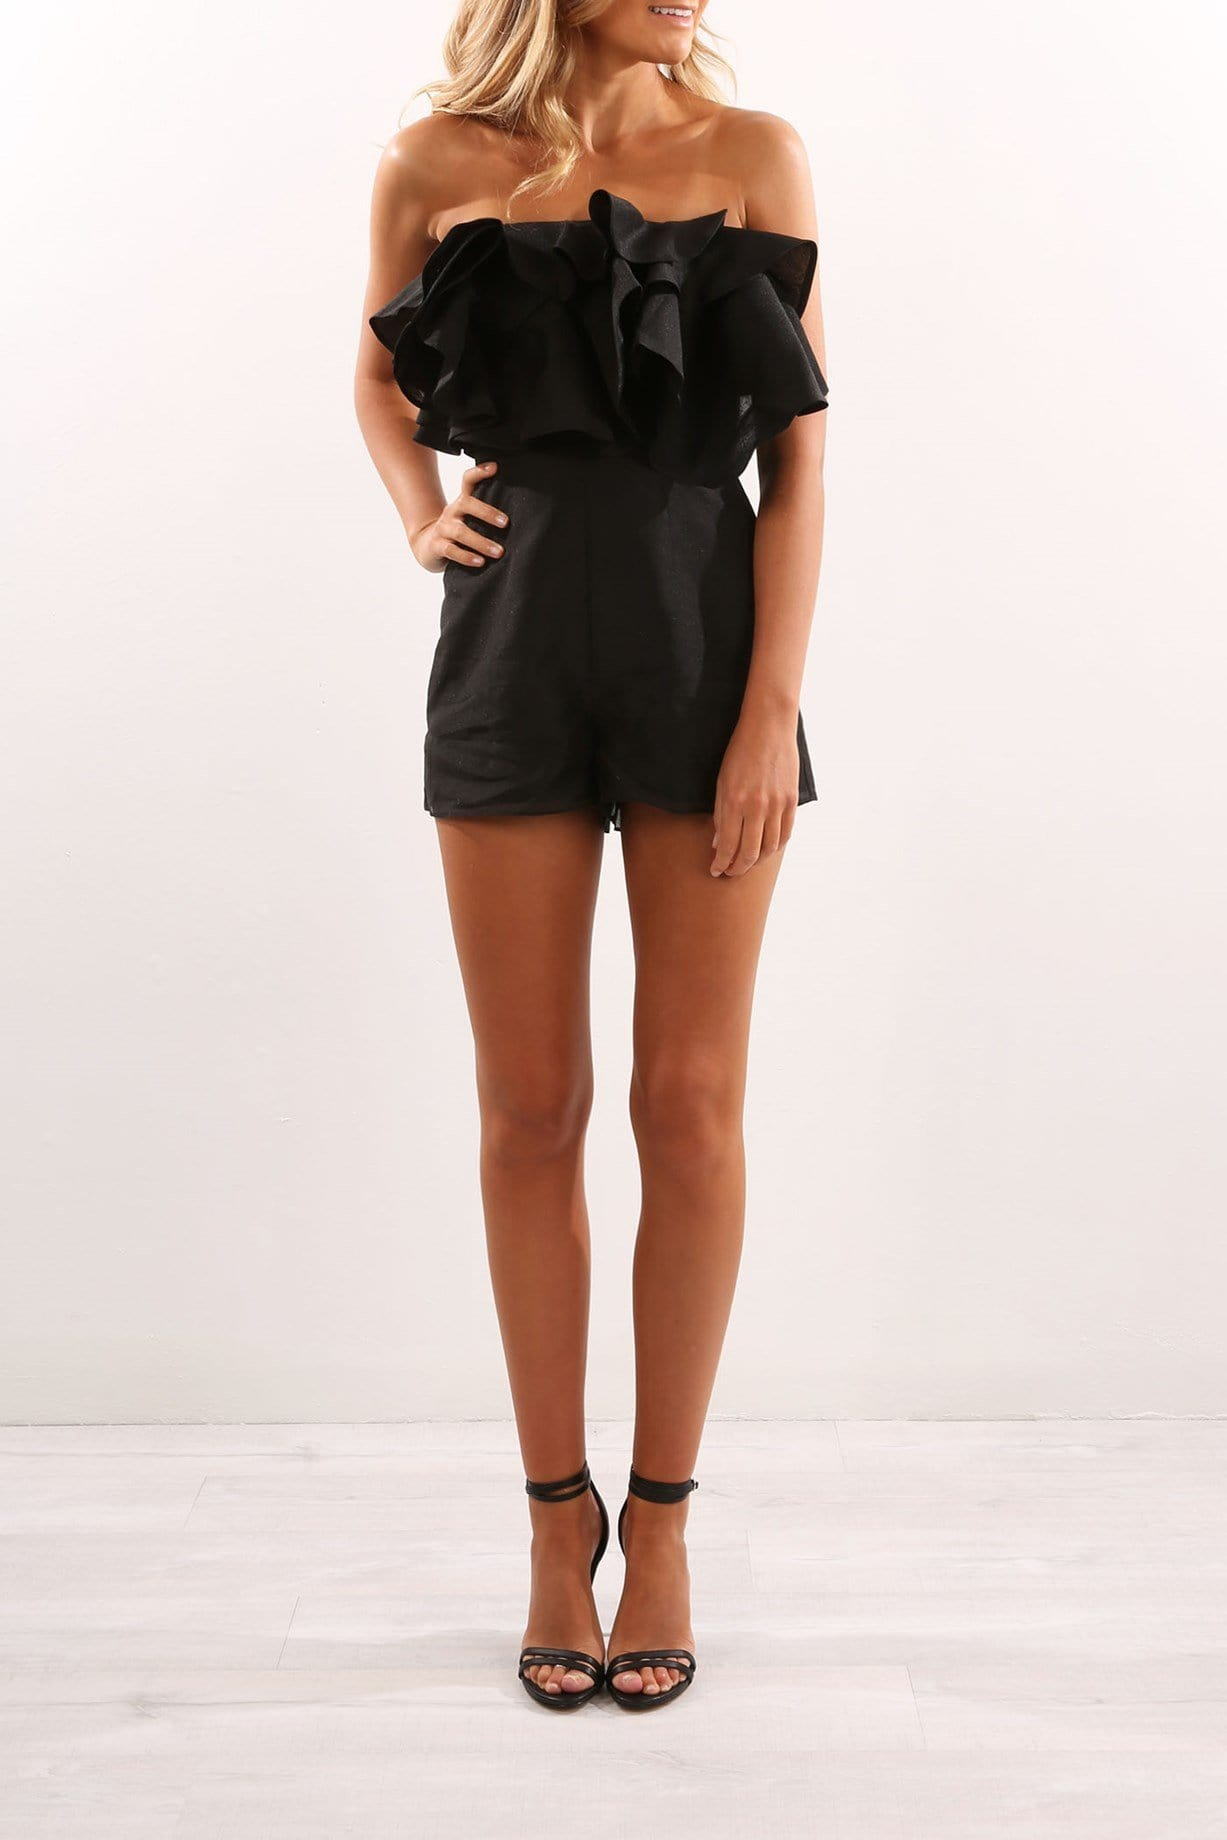 Lost Lover Playsuit Black